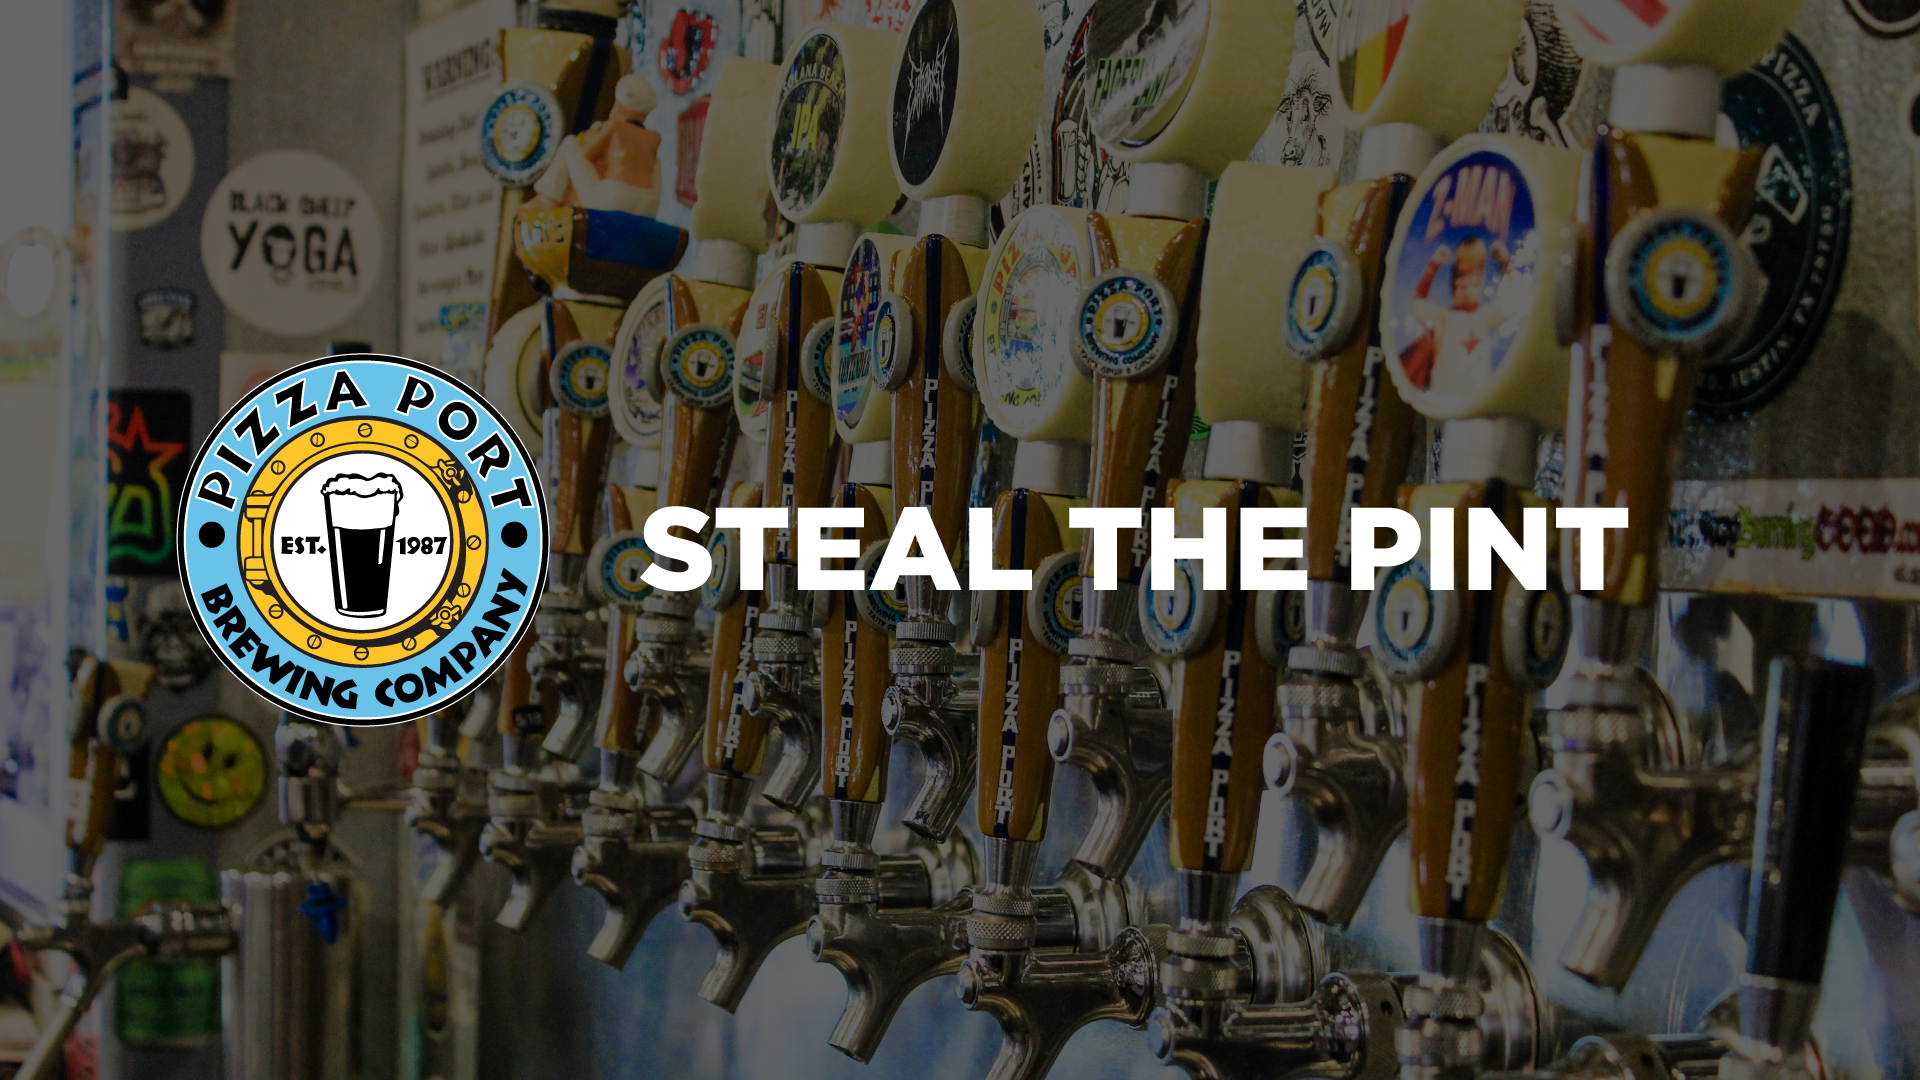 Steal the Pint